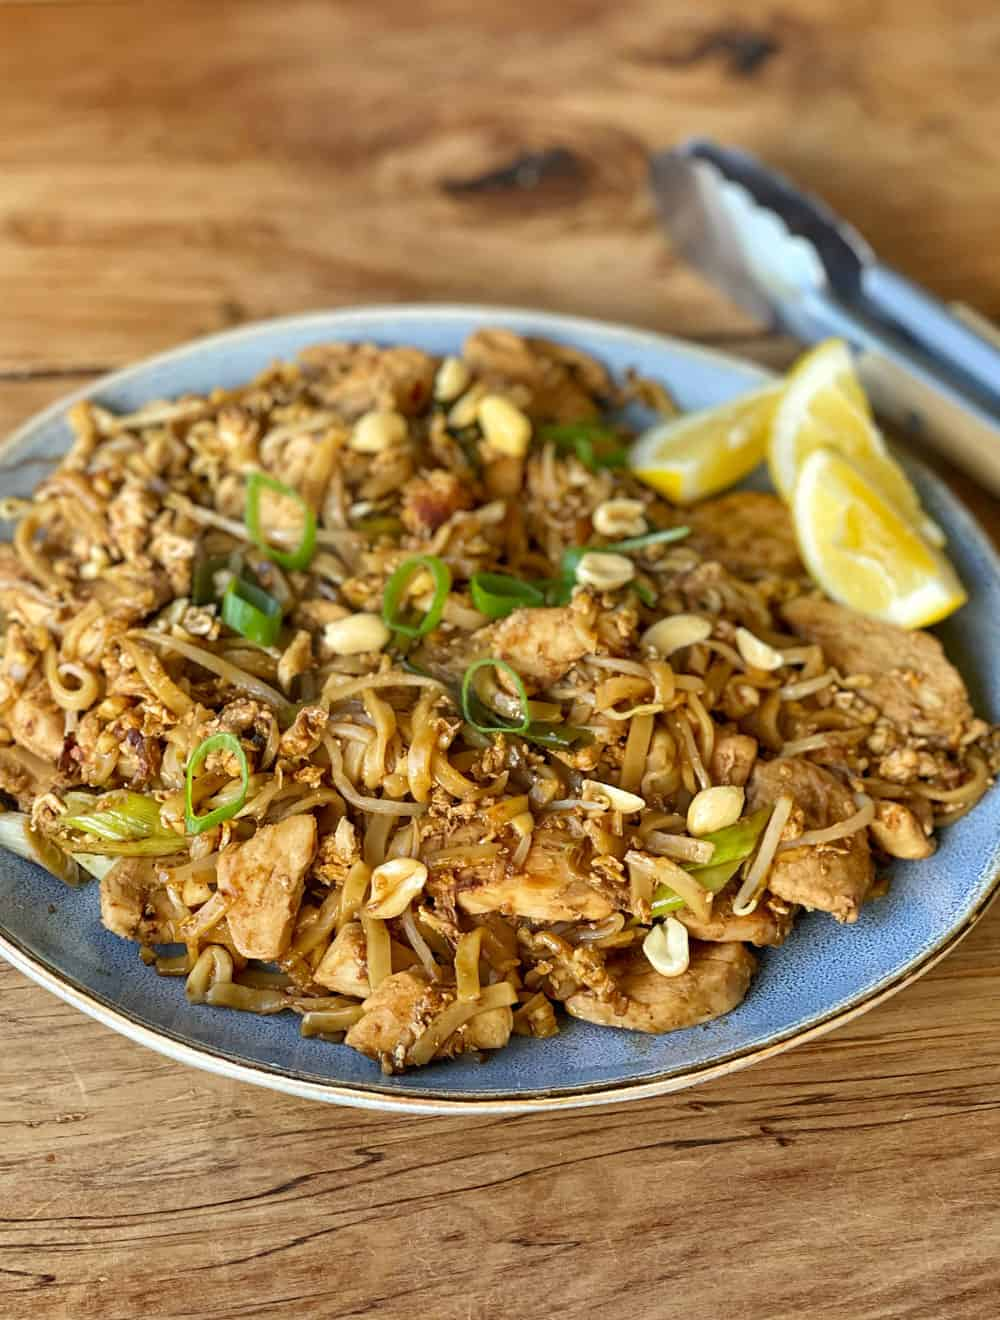 Chicken Pad Thai in a blue bowl on a wooden table.